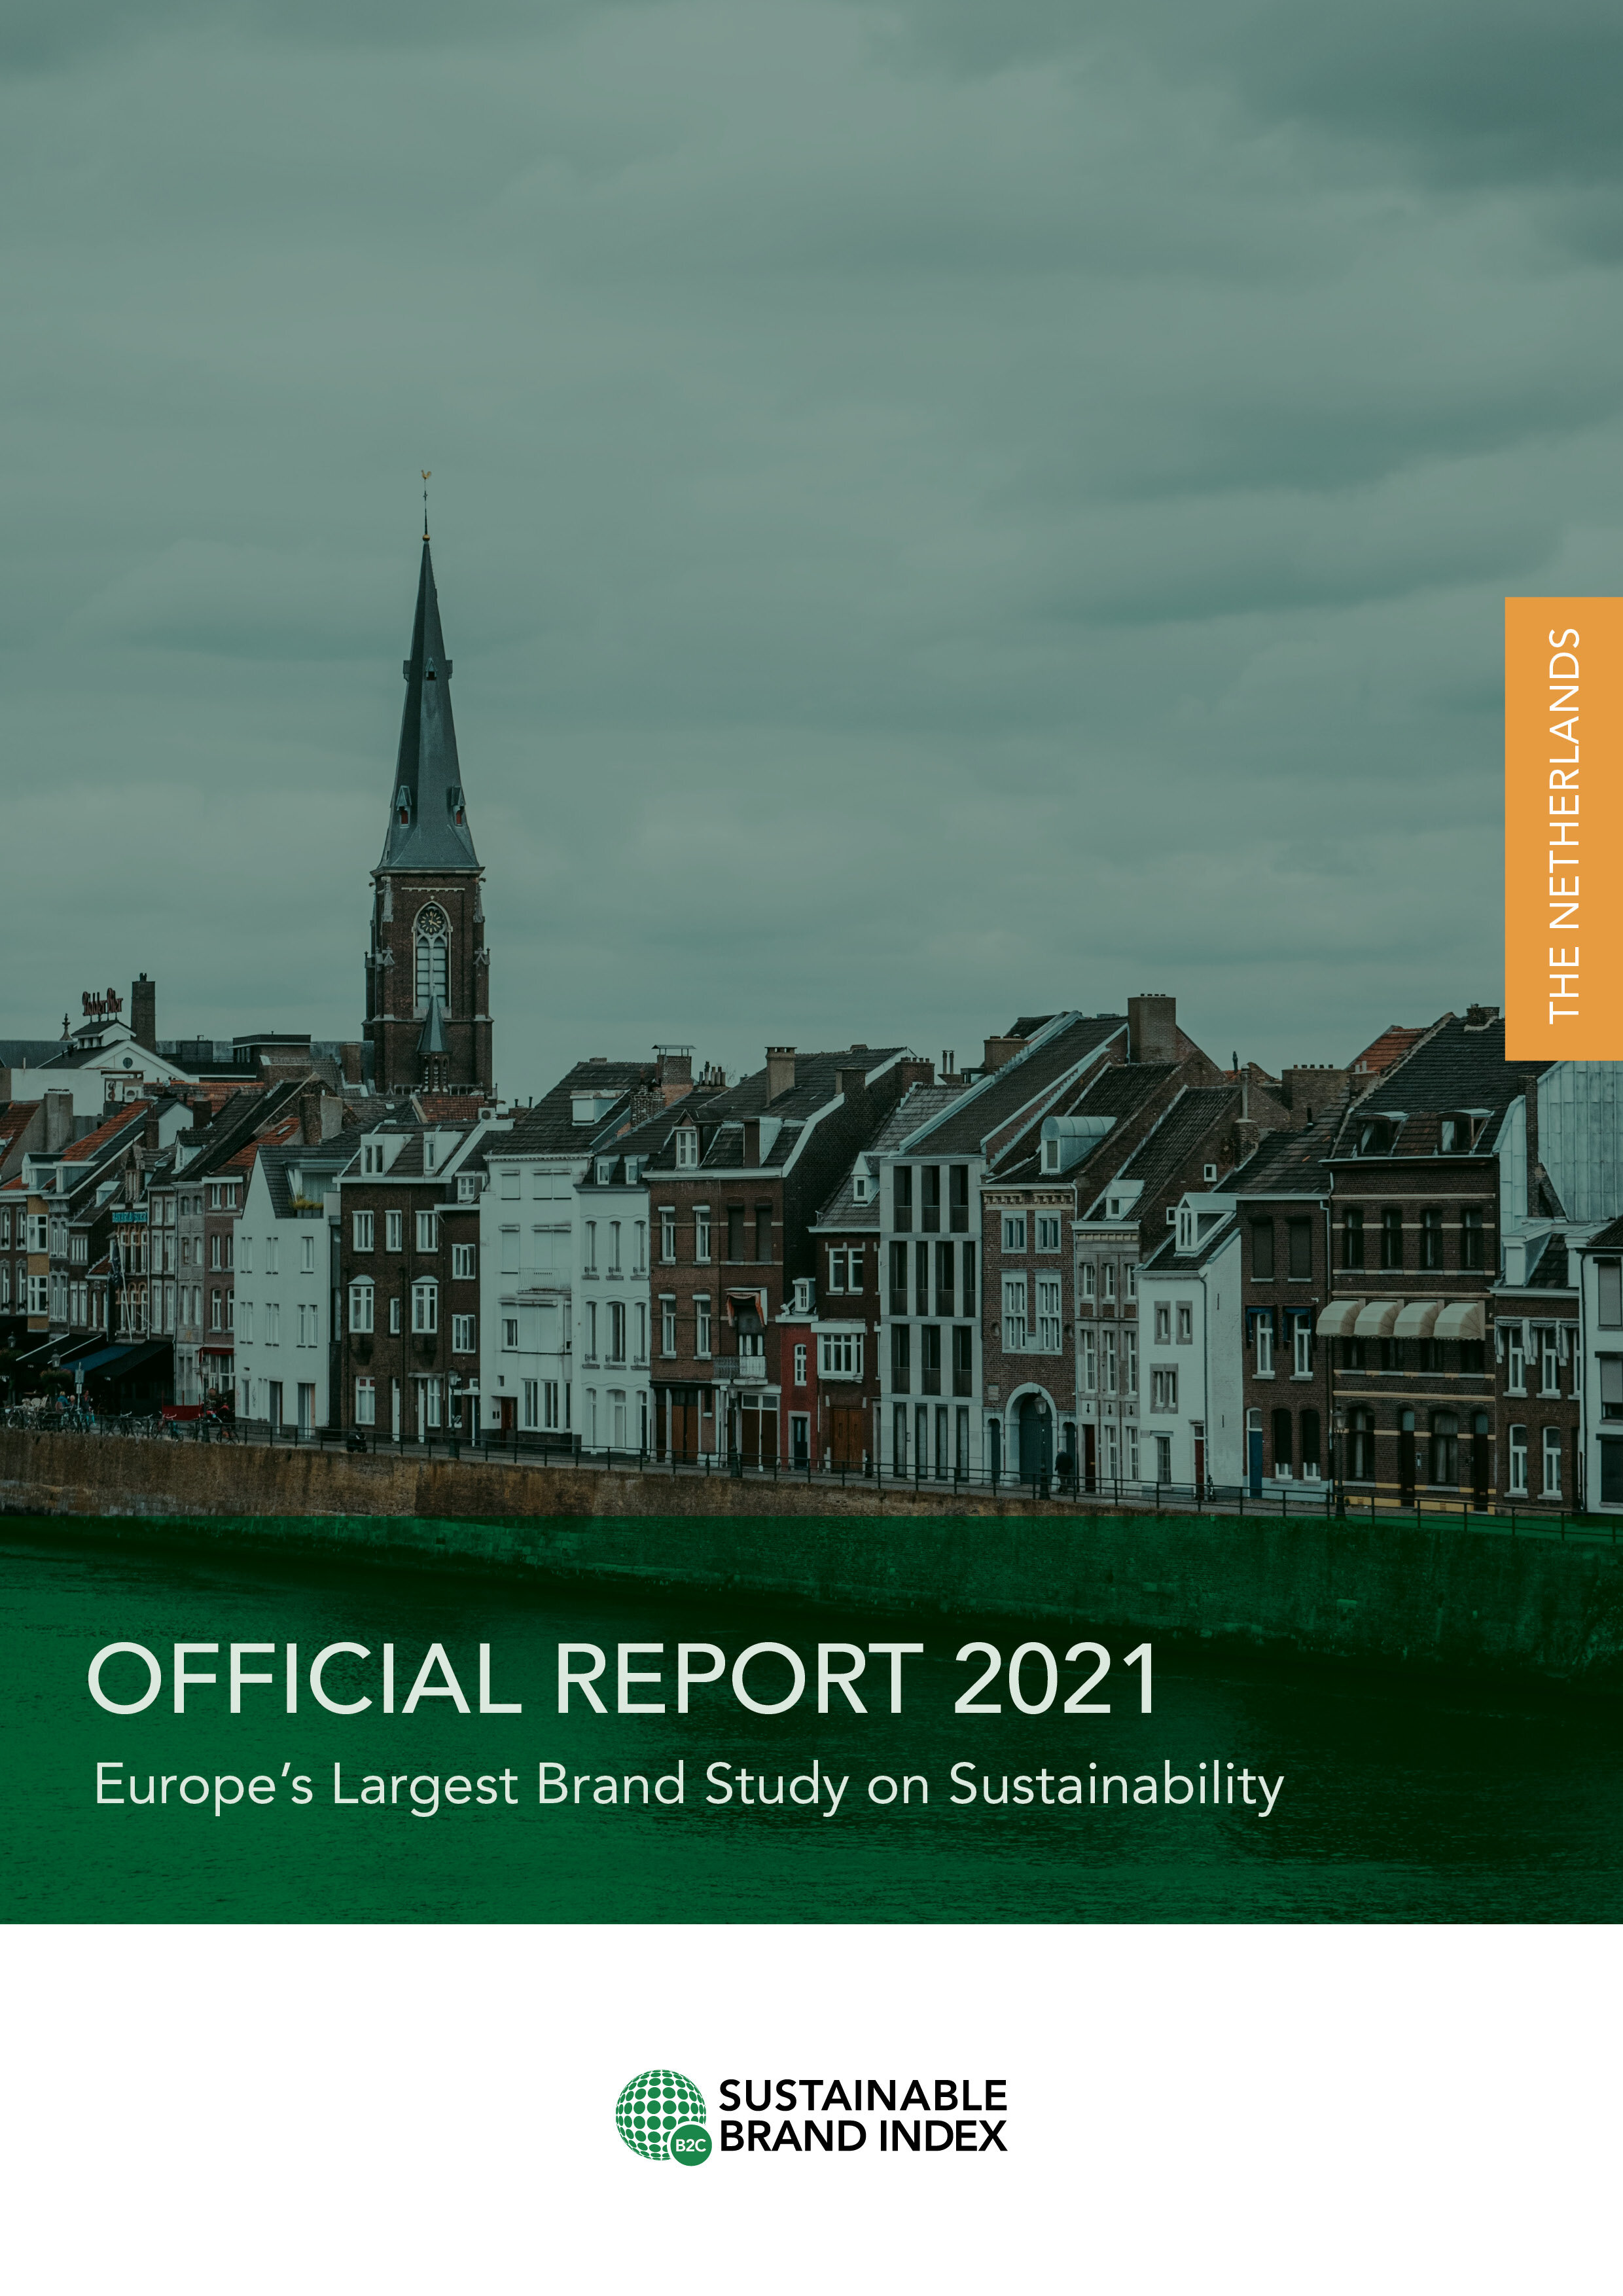 NL_Official Report_2021_Sustainable Brand Index.jpg